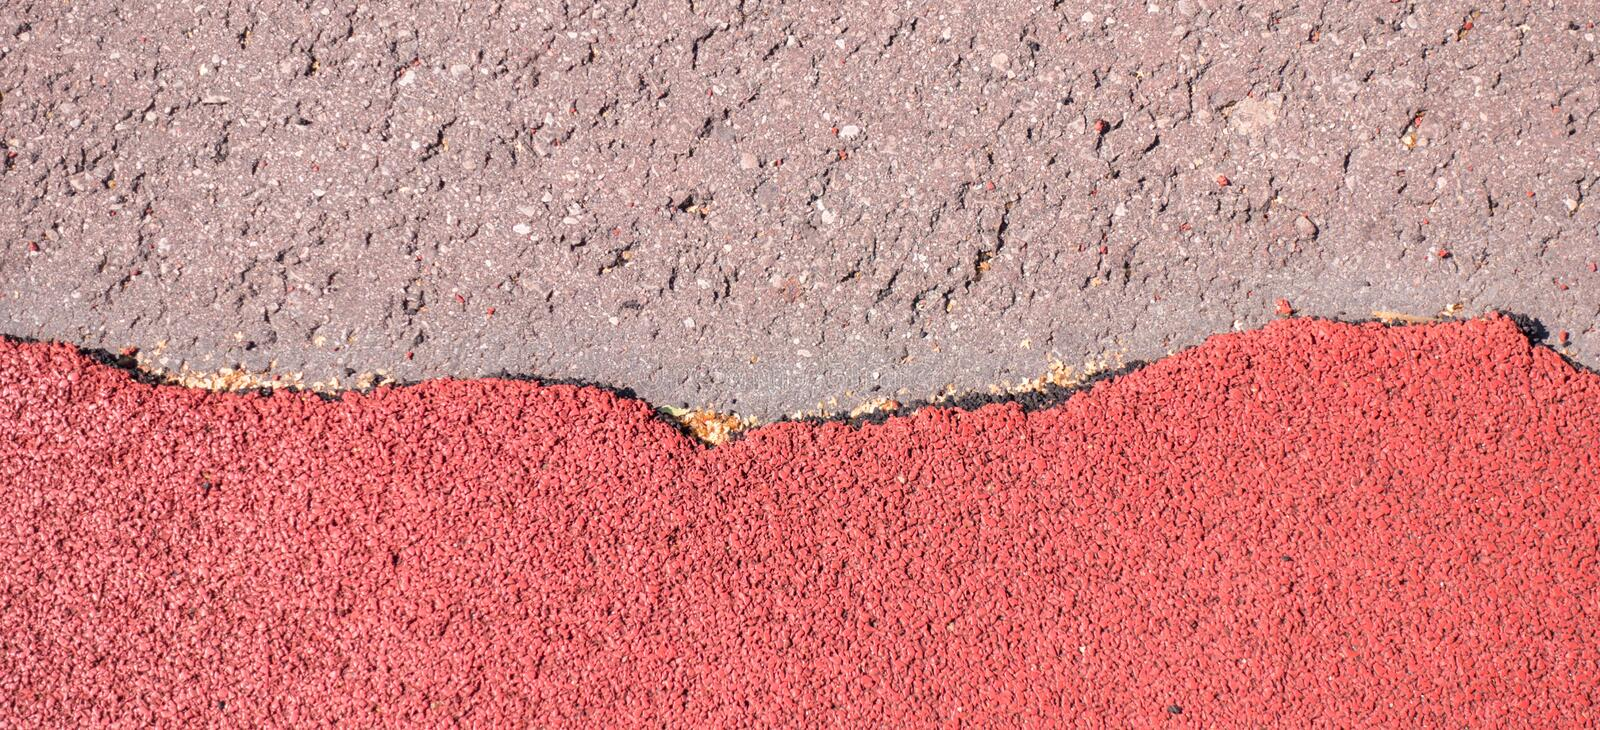 Old torn red rubber crumb cover, treadmill or running track surface outdoor playground stadium texture background. Old torn red rubber crumb cover, treadmill or royalty free stock images